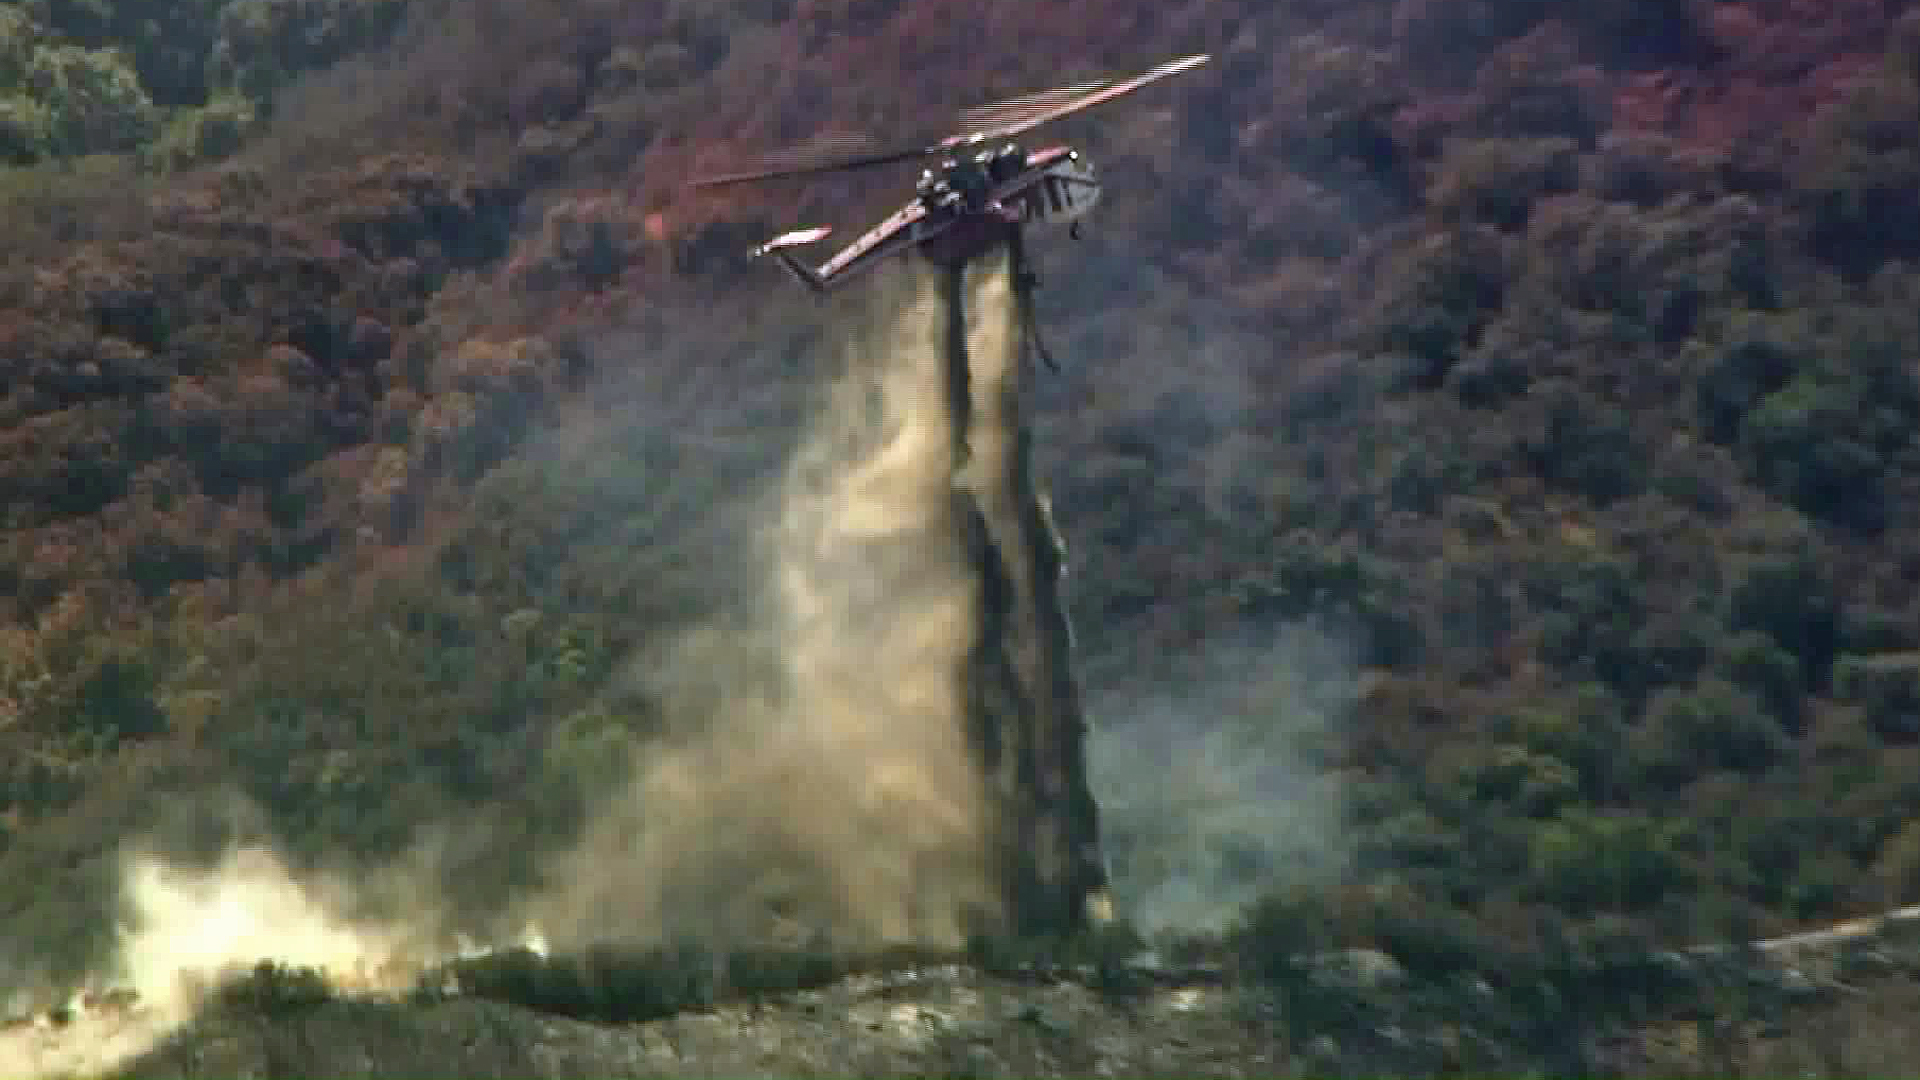 A helicopter helps battle the Canyon Fire near Corona. (Credit: KTLA)